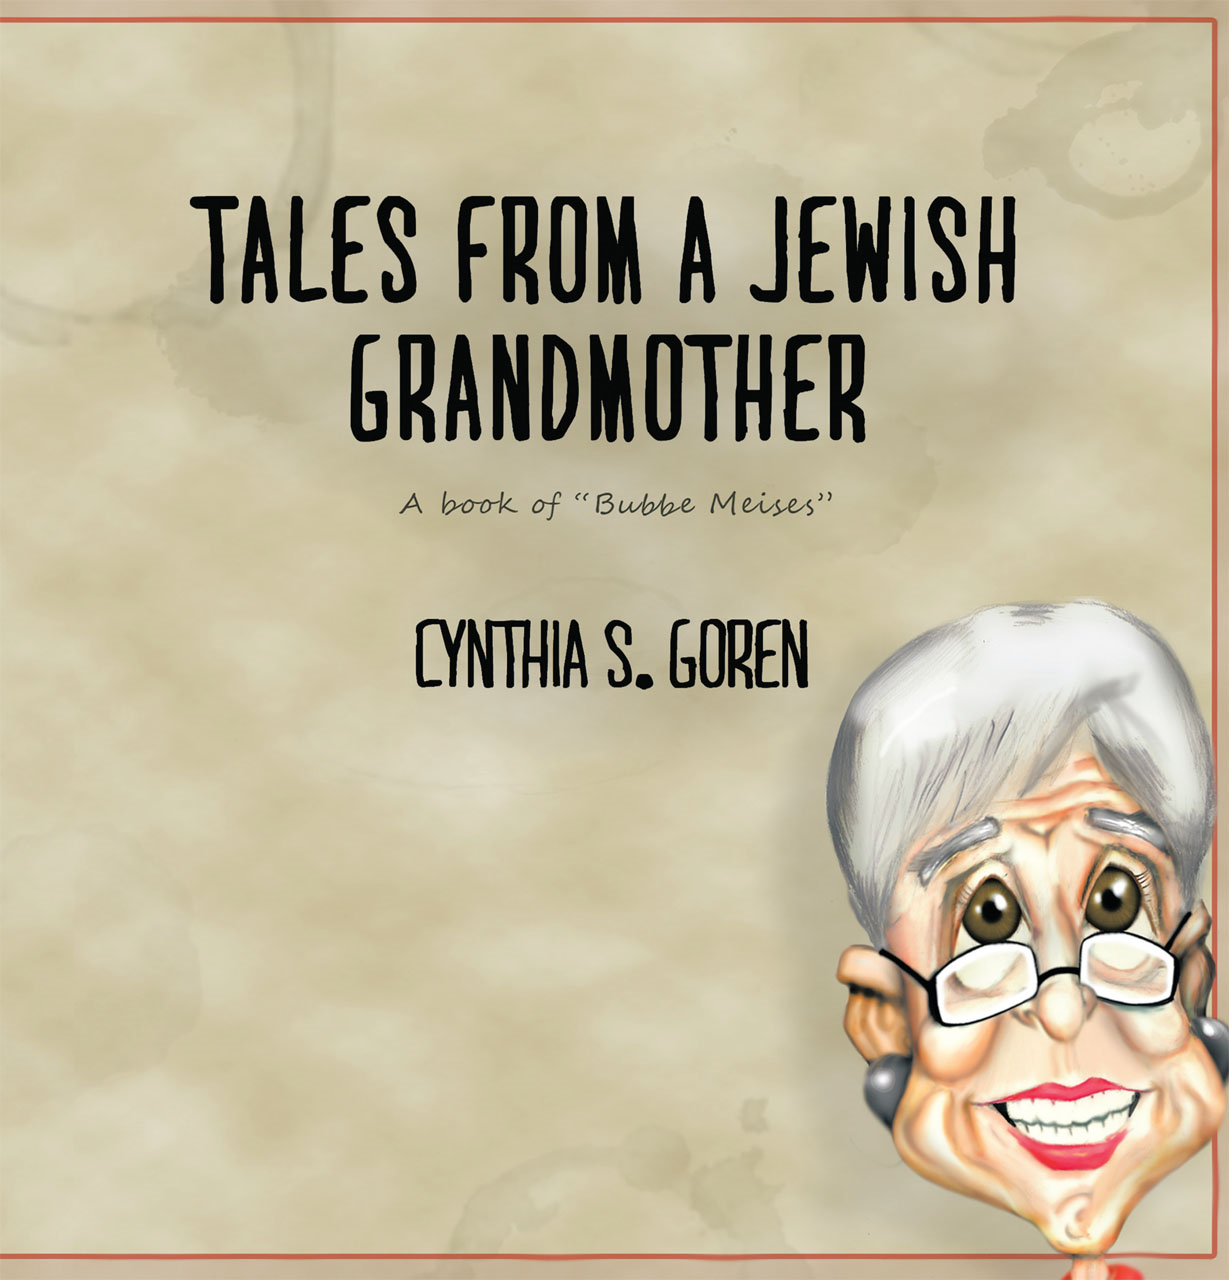 TALES FROM A JEWISH GRANDMOTHER